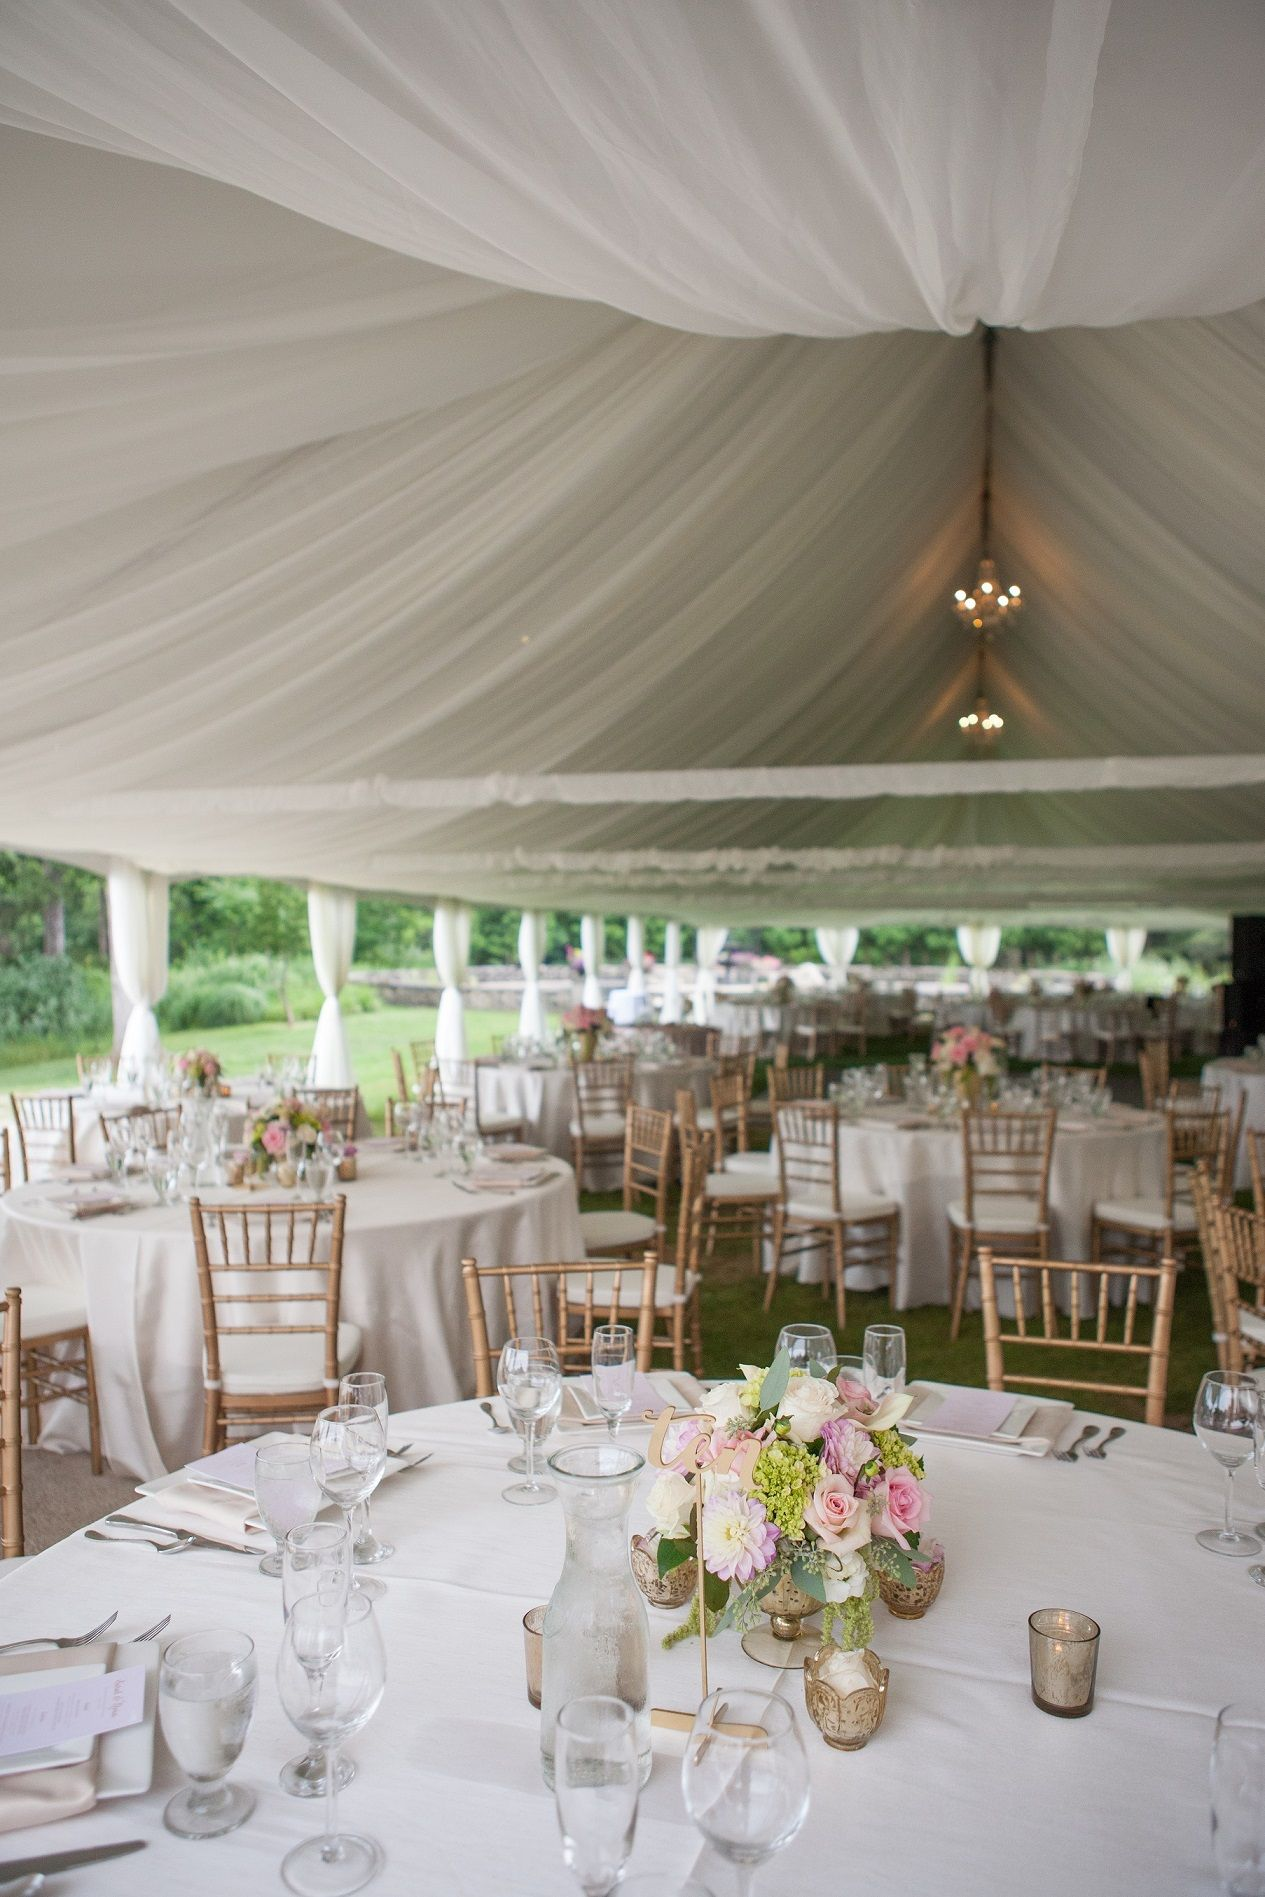 Felt Mansion Wedding Tent Draping Chandeliers Blush And Gold